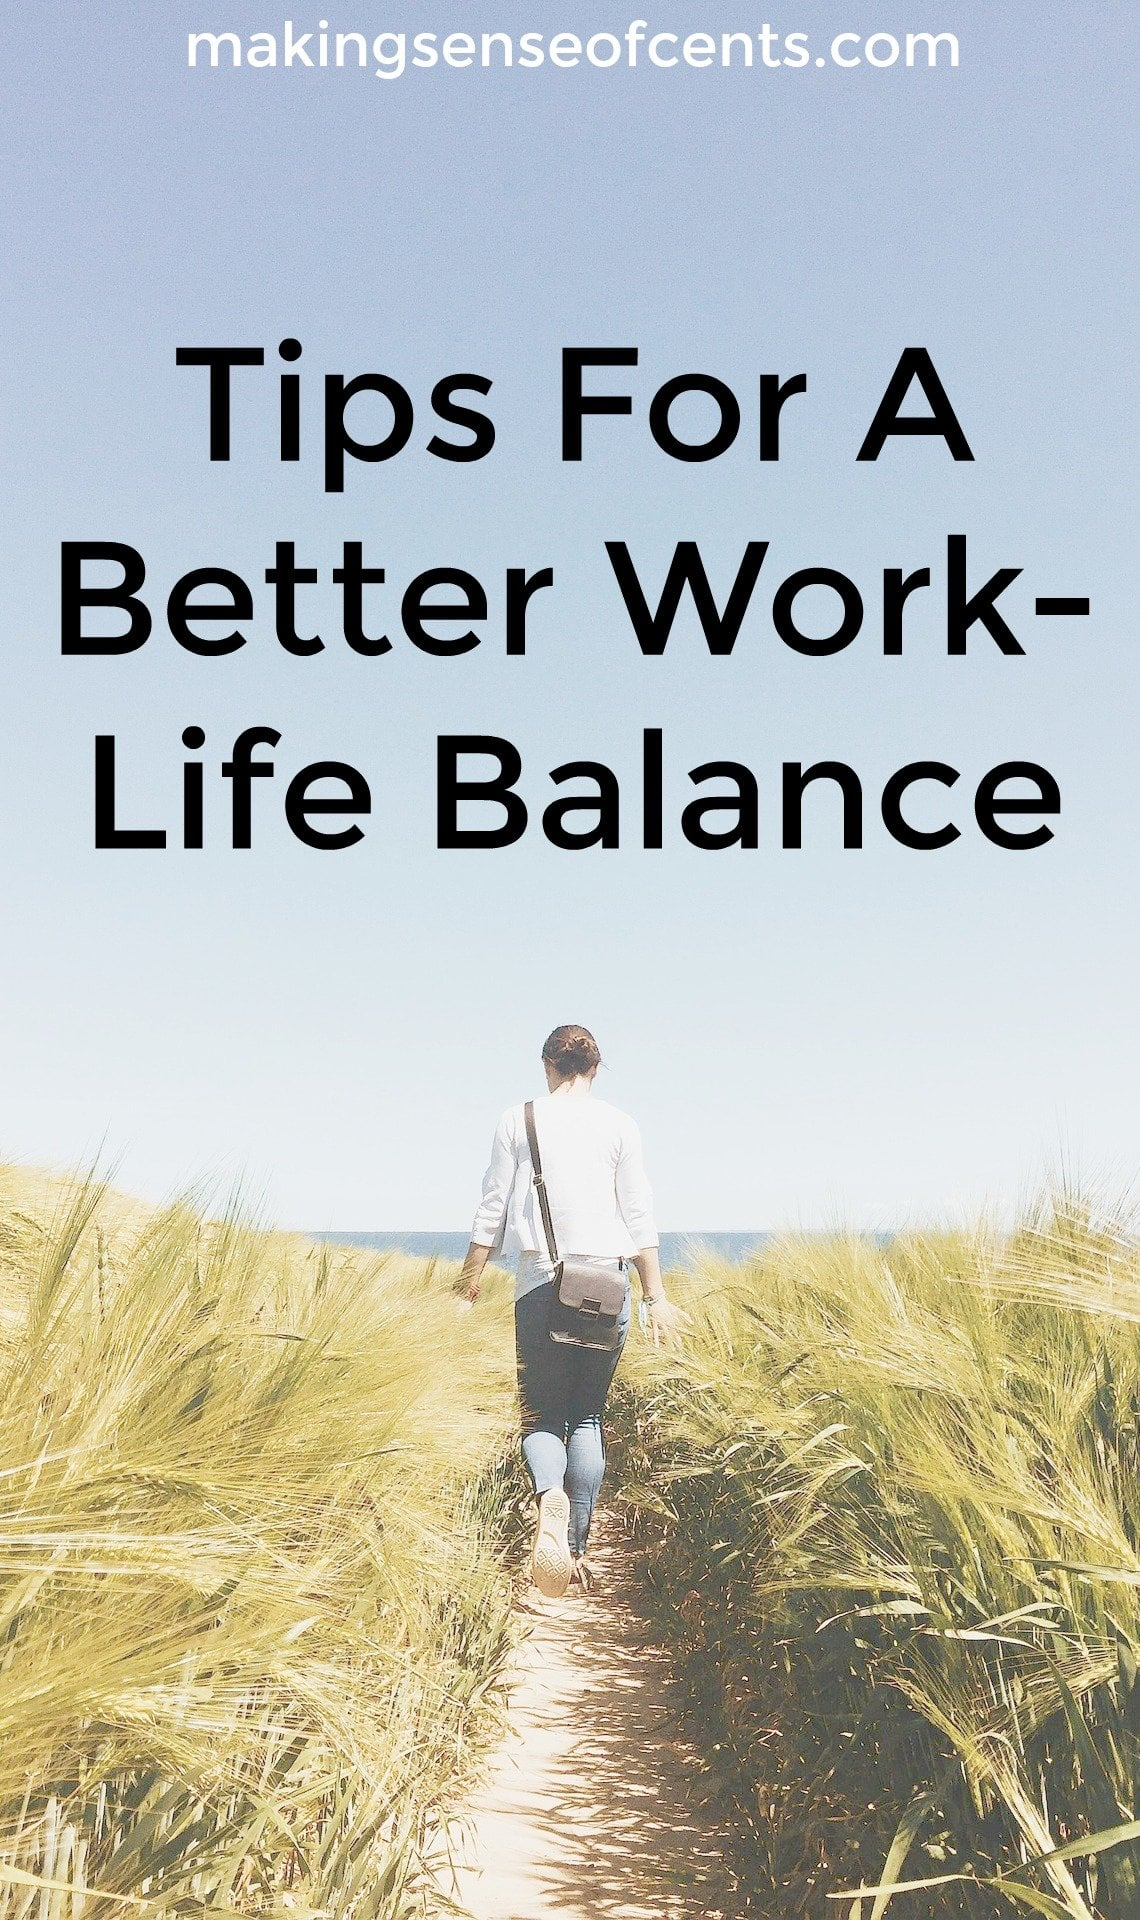 Check out these tips for better work-life balance. This is a great list!